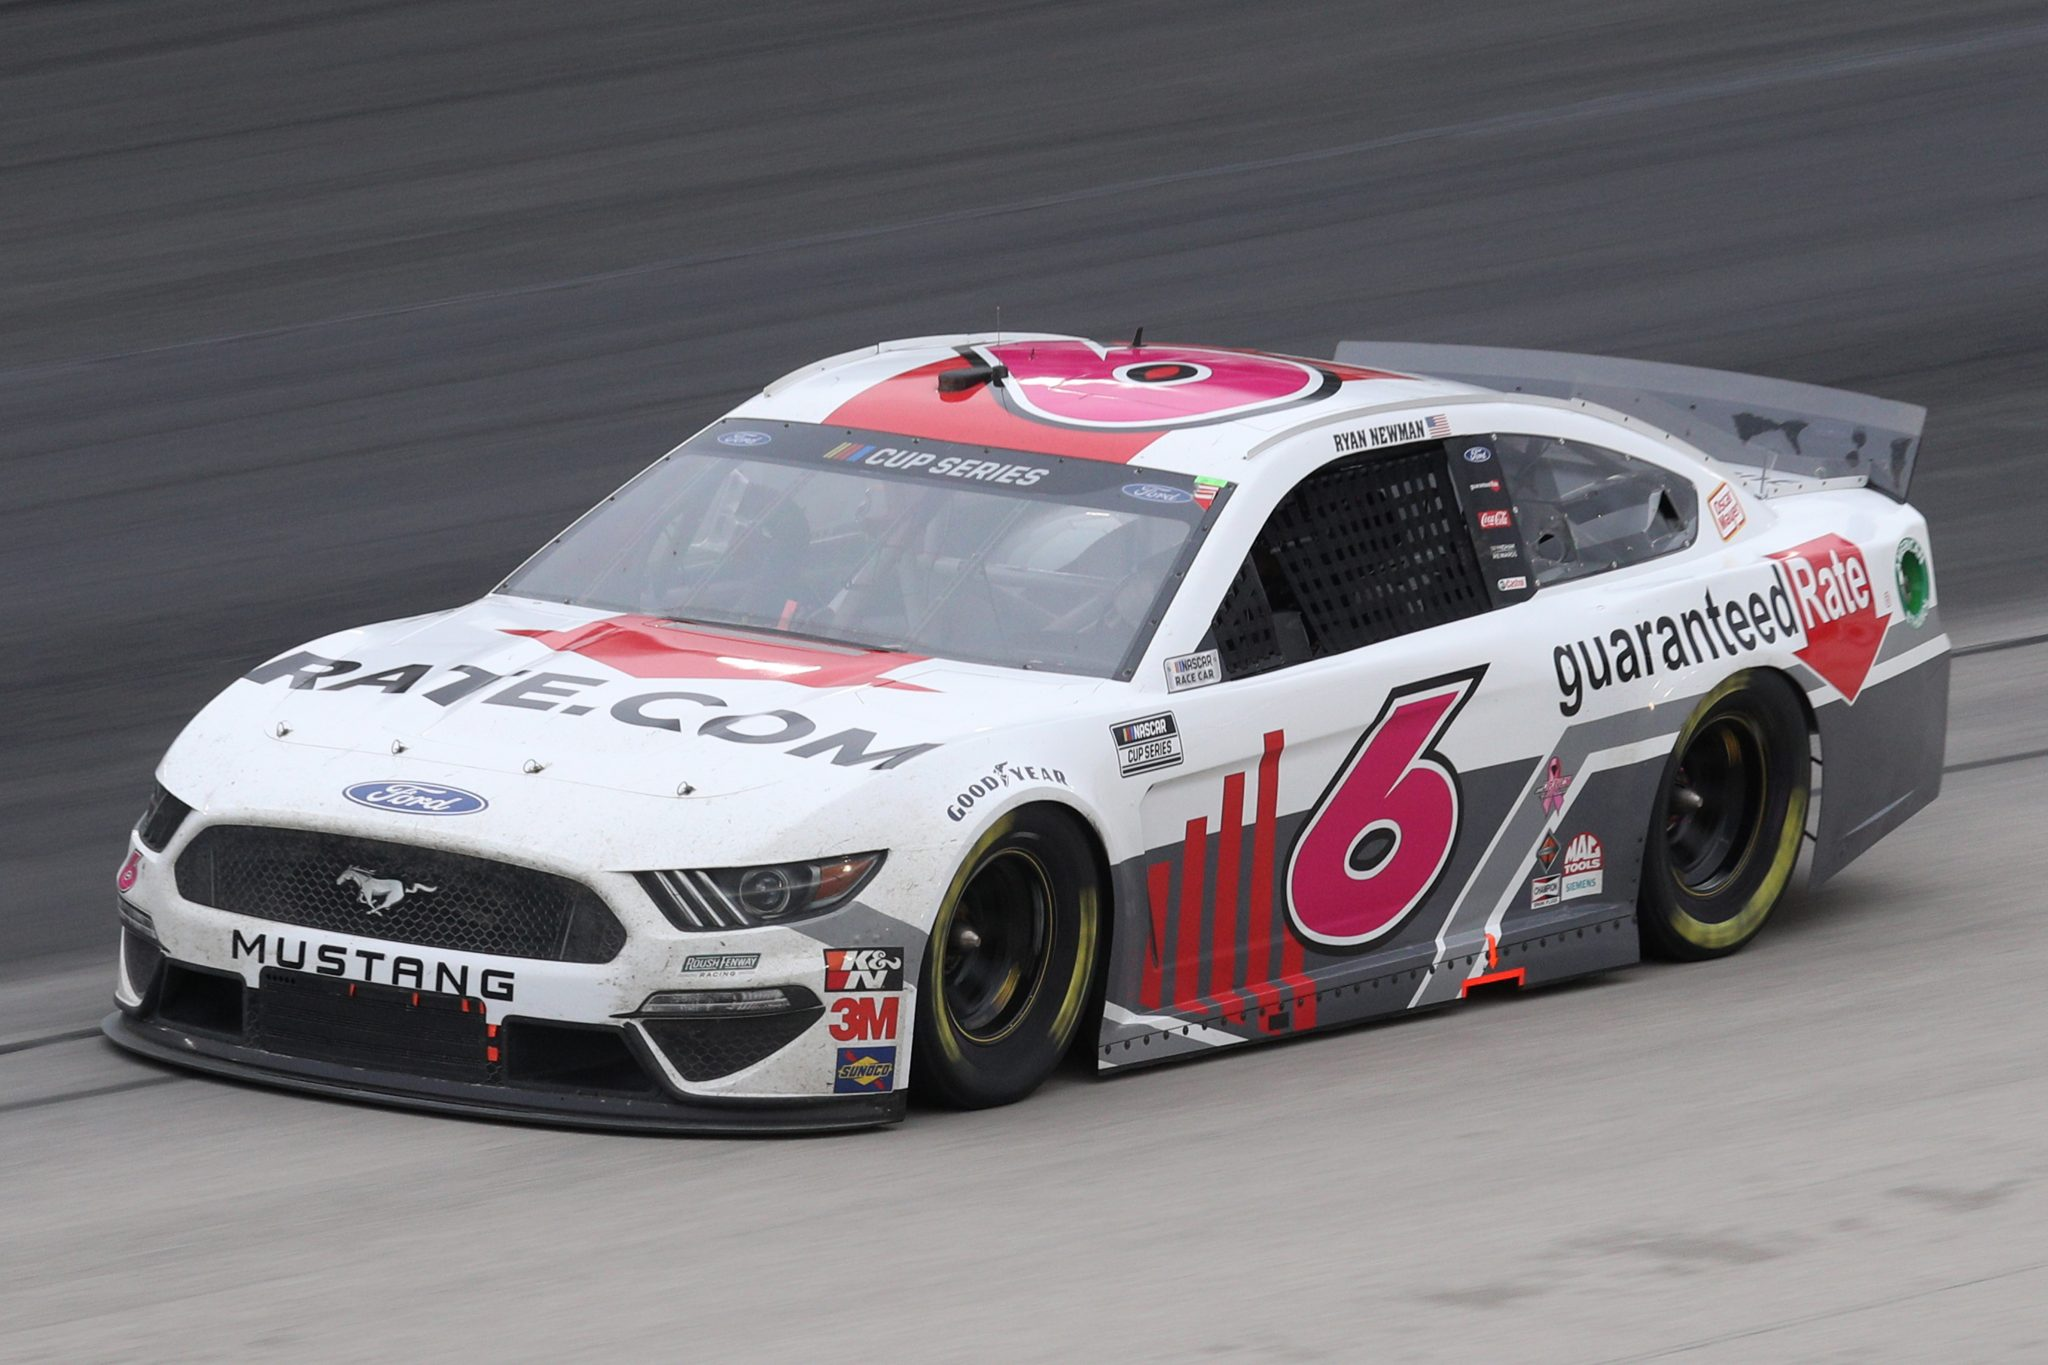 FORT WORTH, TEXAS - OCTOBER 28: Ryan Newman, driver of the #6 Guaranteed Rate Ford, drives during the NASCAR Cup Series Autotrader EchoPark Automotive 500 at Texas Motor Speedway on October 28, 2020 in Fort Worth, Texas. (Photo by Chris Graythen/Getty Images)   Getty Images